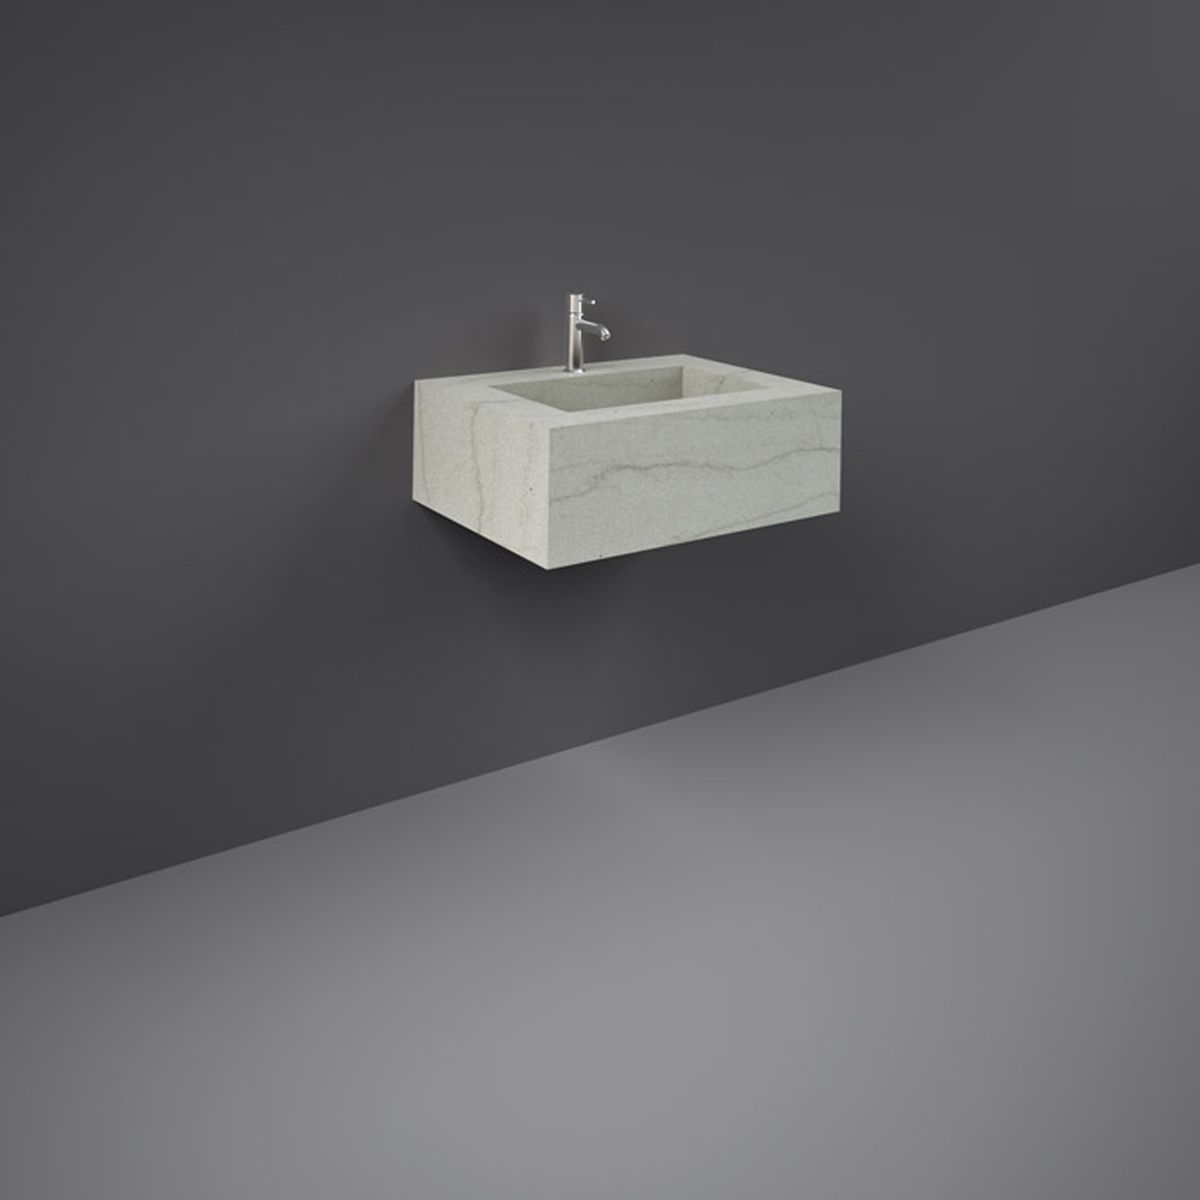 RAK Precious Macaubus Wall Hung Counter Basin with Bracket